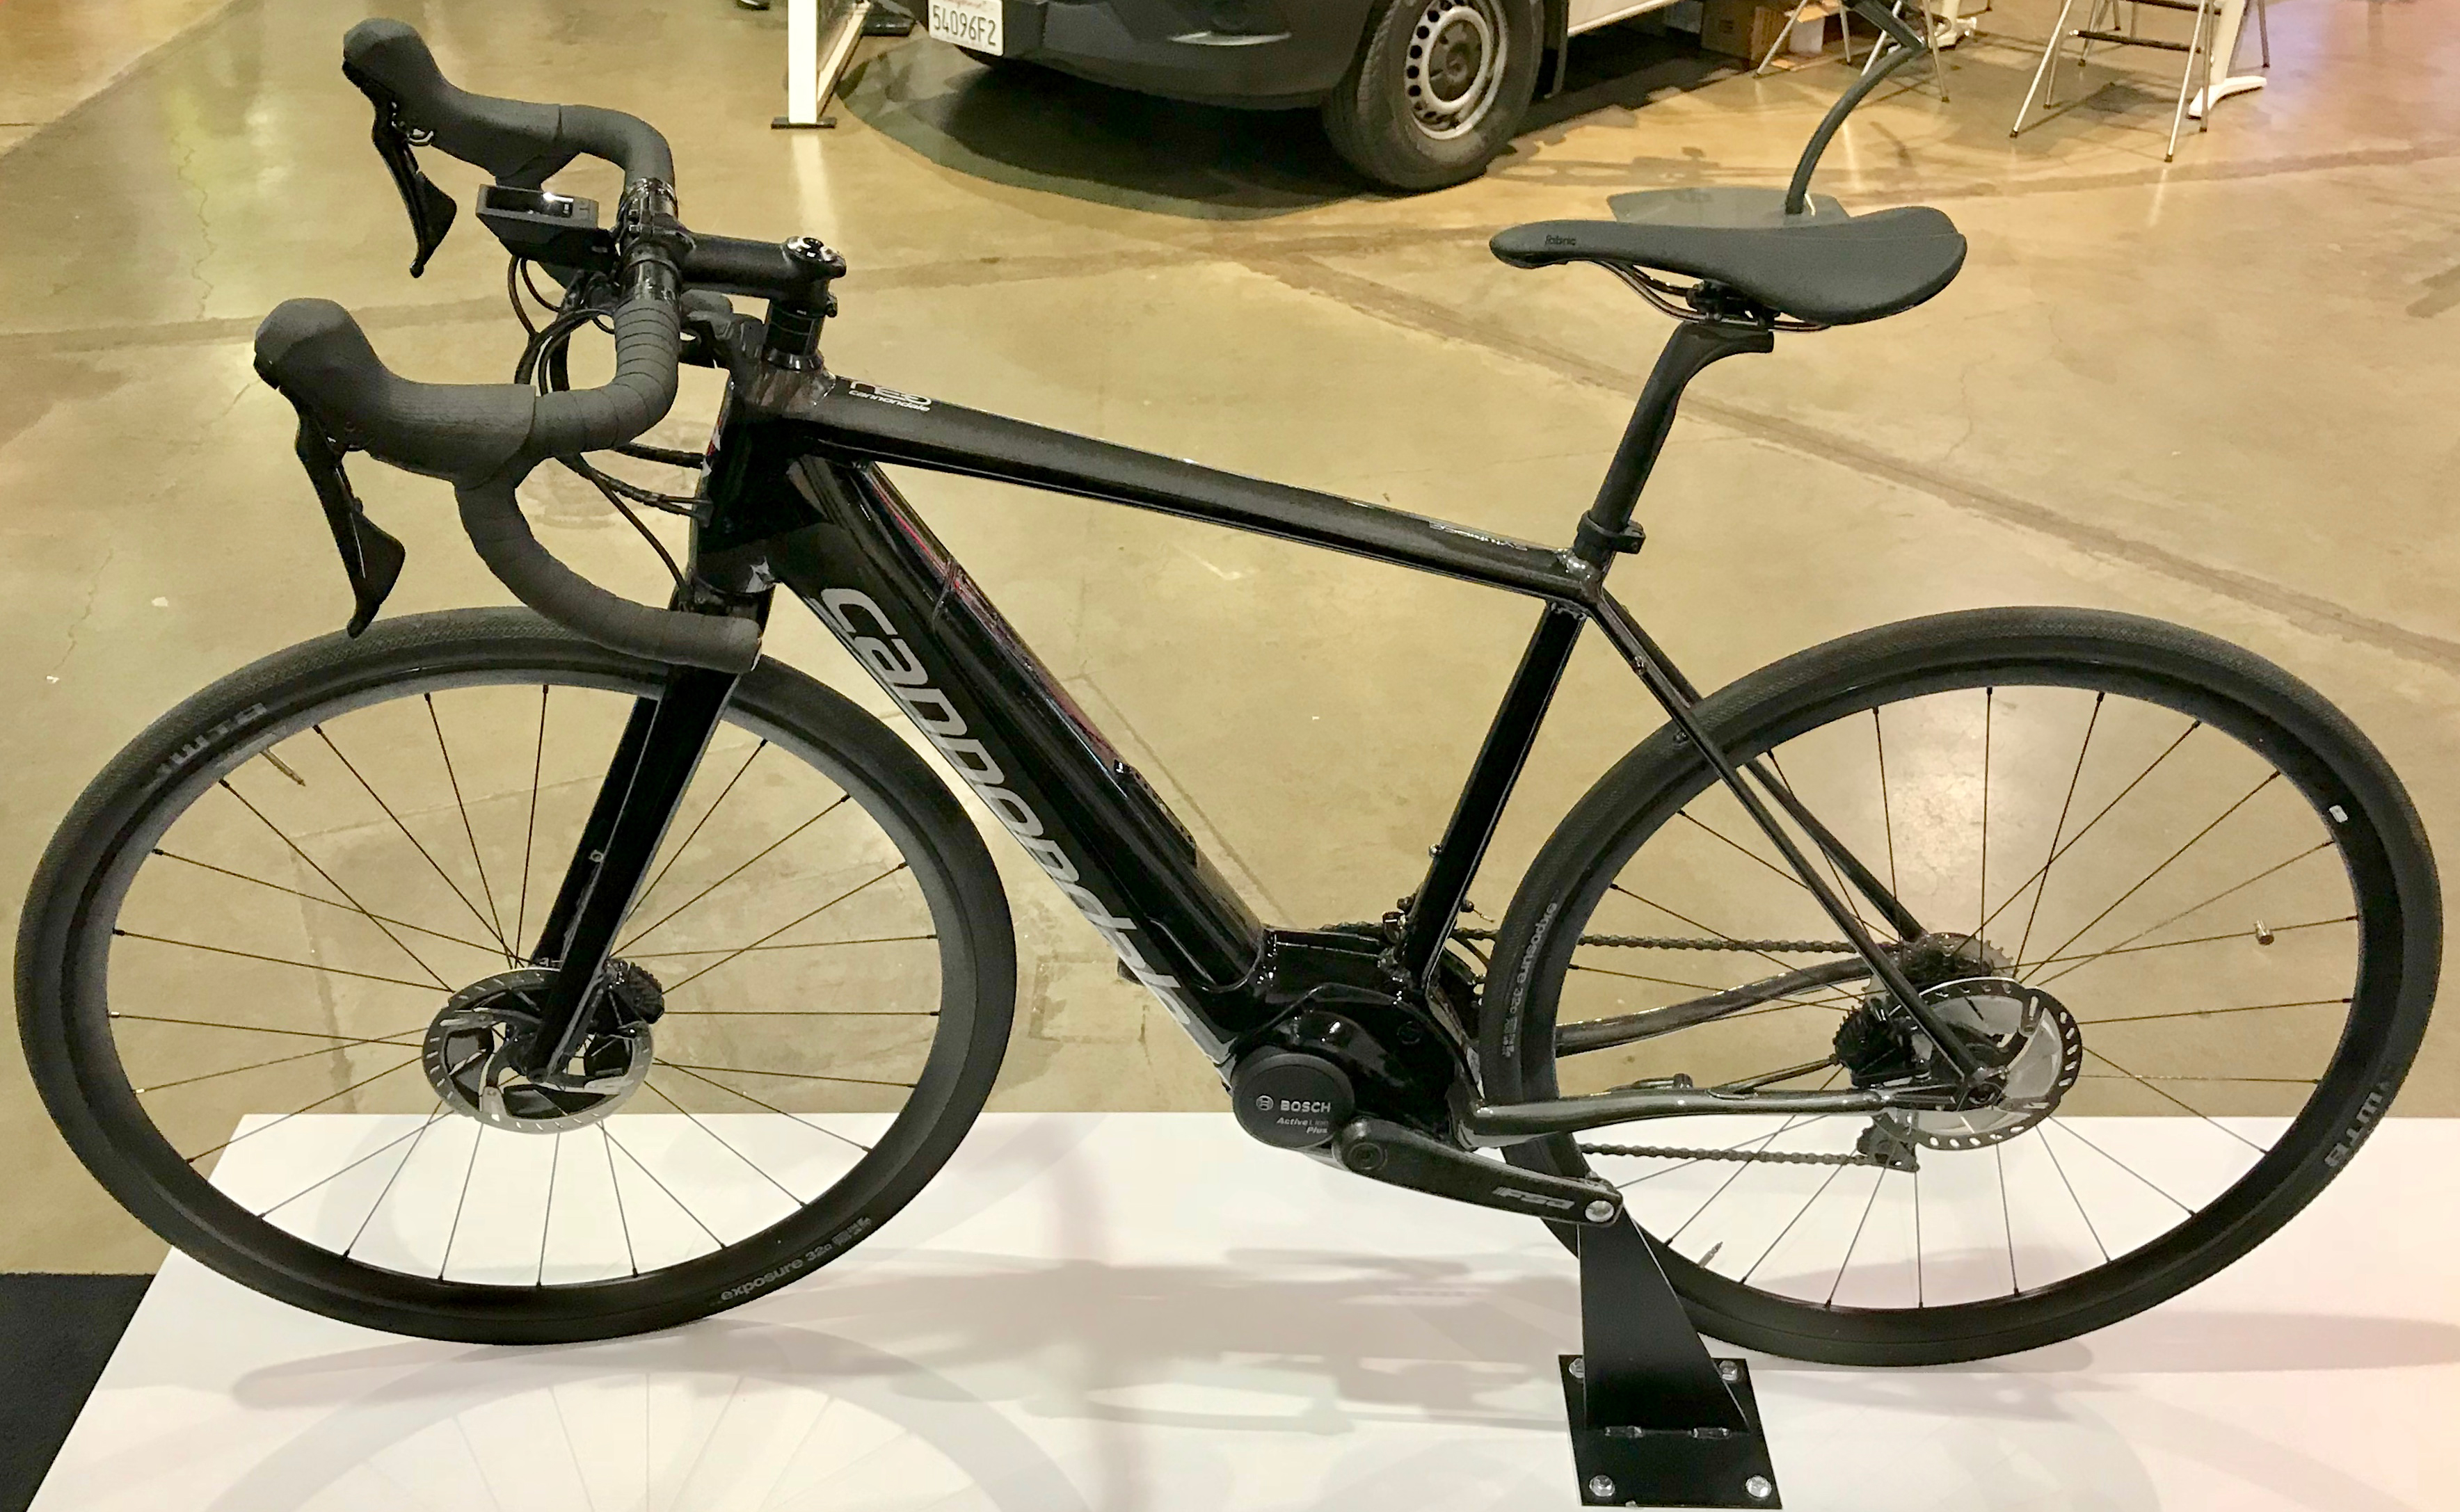 4db4283f5f8 The Synapse NEO has a 20-mph motor assist and is classified as a class 1 e- bike.